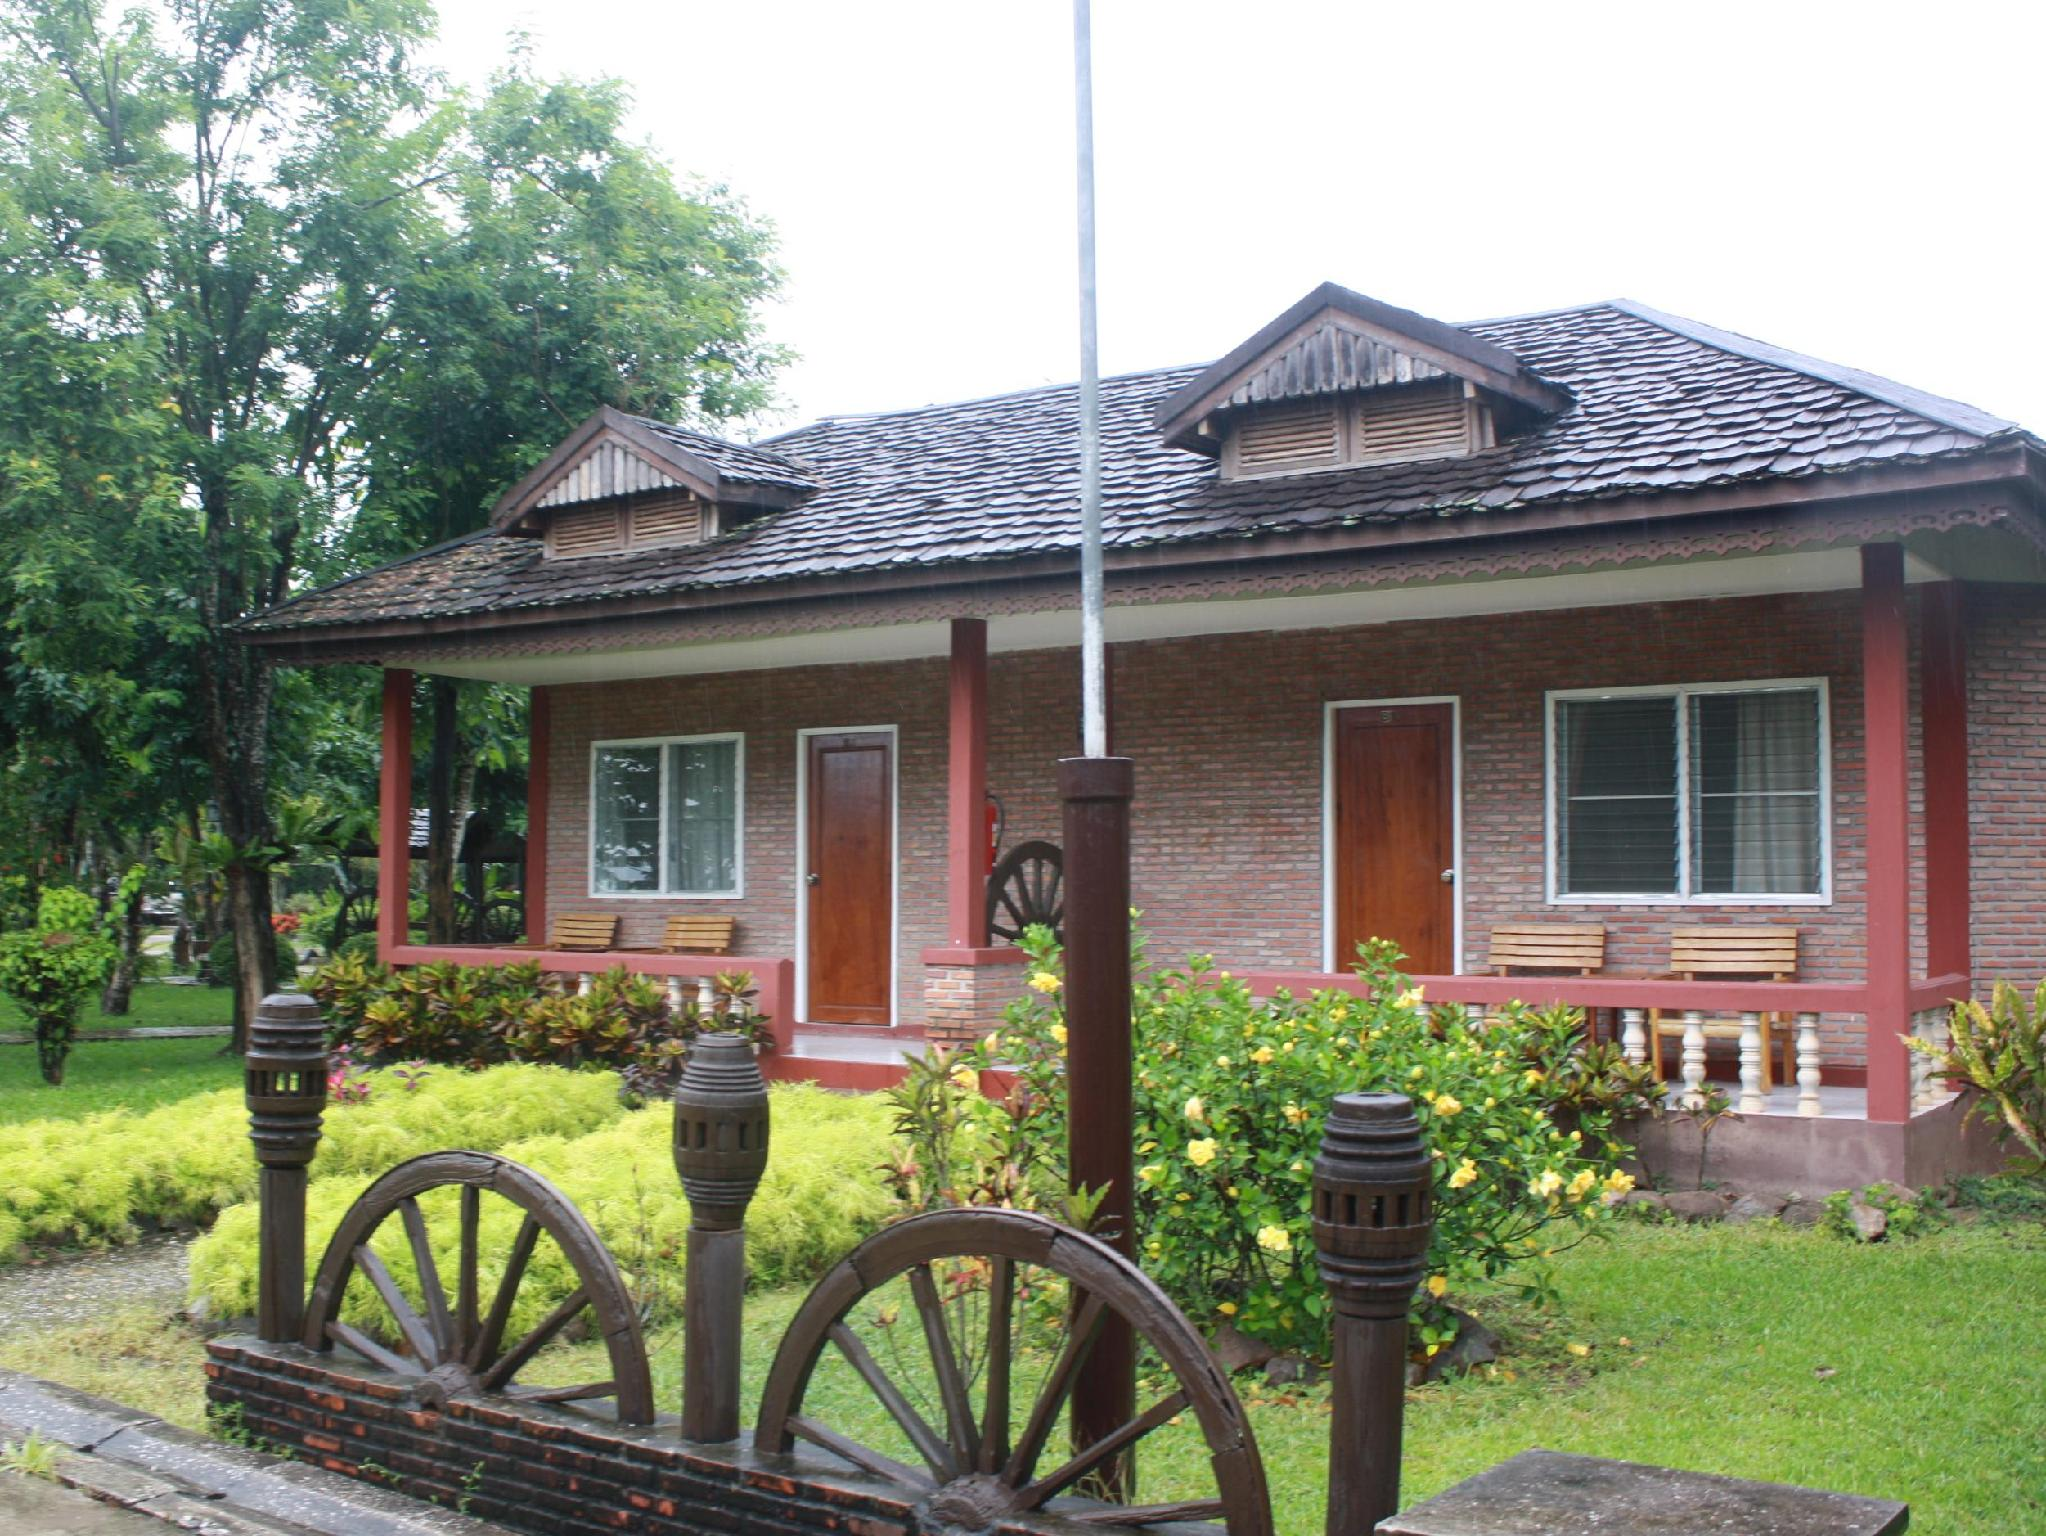 Chiangkhan Thailand  City new picture : ... Kaeng Khut Khu, Chiangkhan, Thailand Great discounted rates